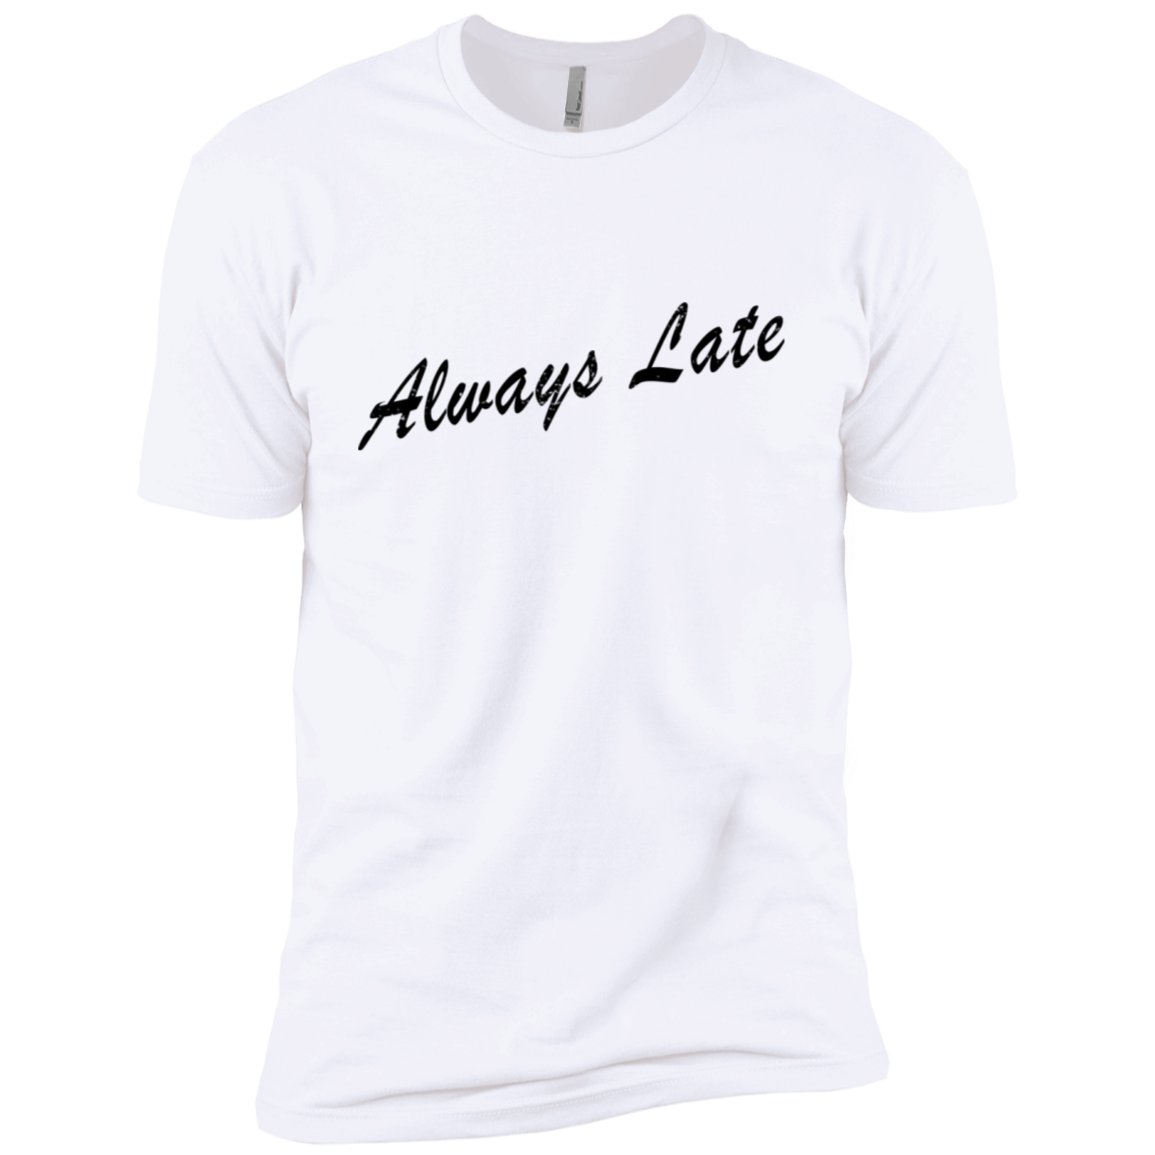 Always Late Men's Classic Tee